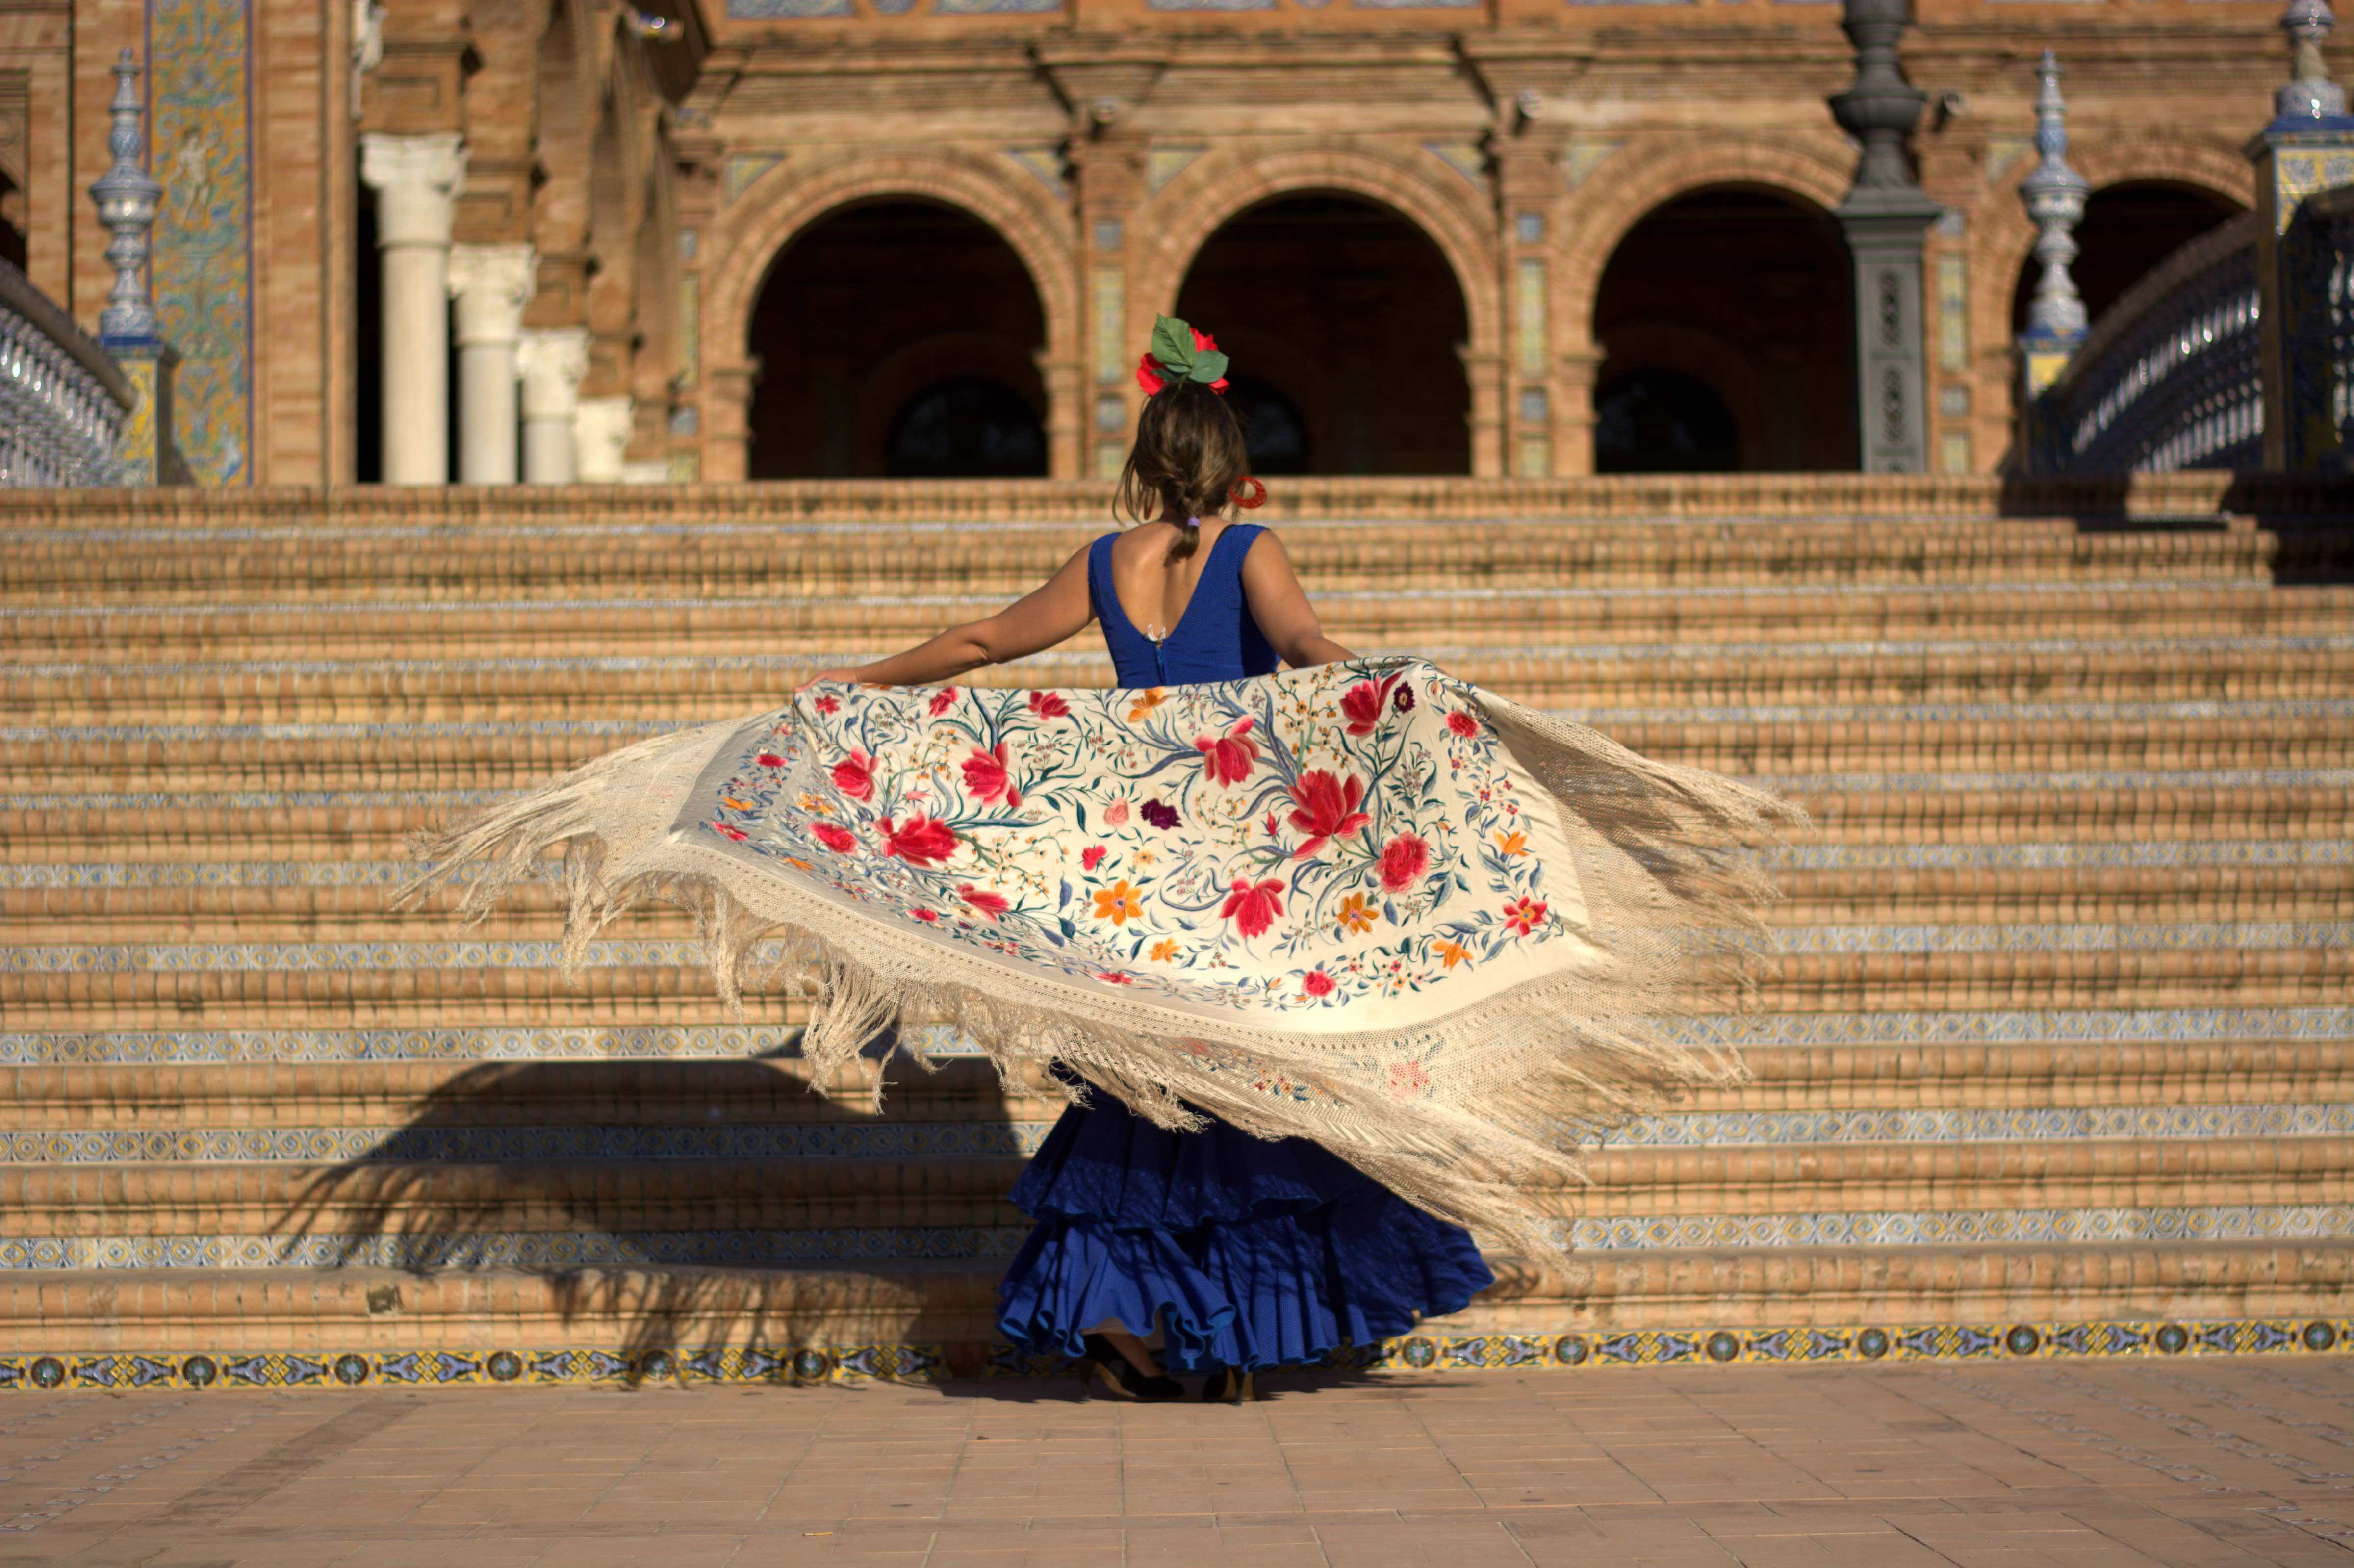 A flamenco dancer does her thing in the Plaza of Spain in Seville.